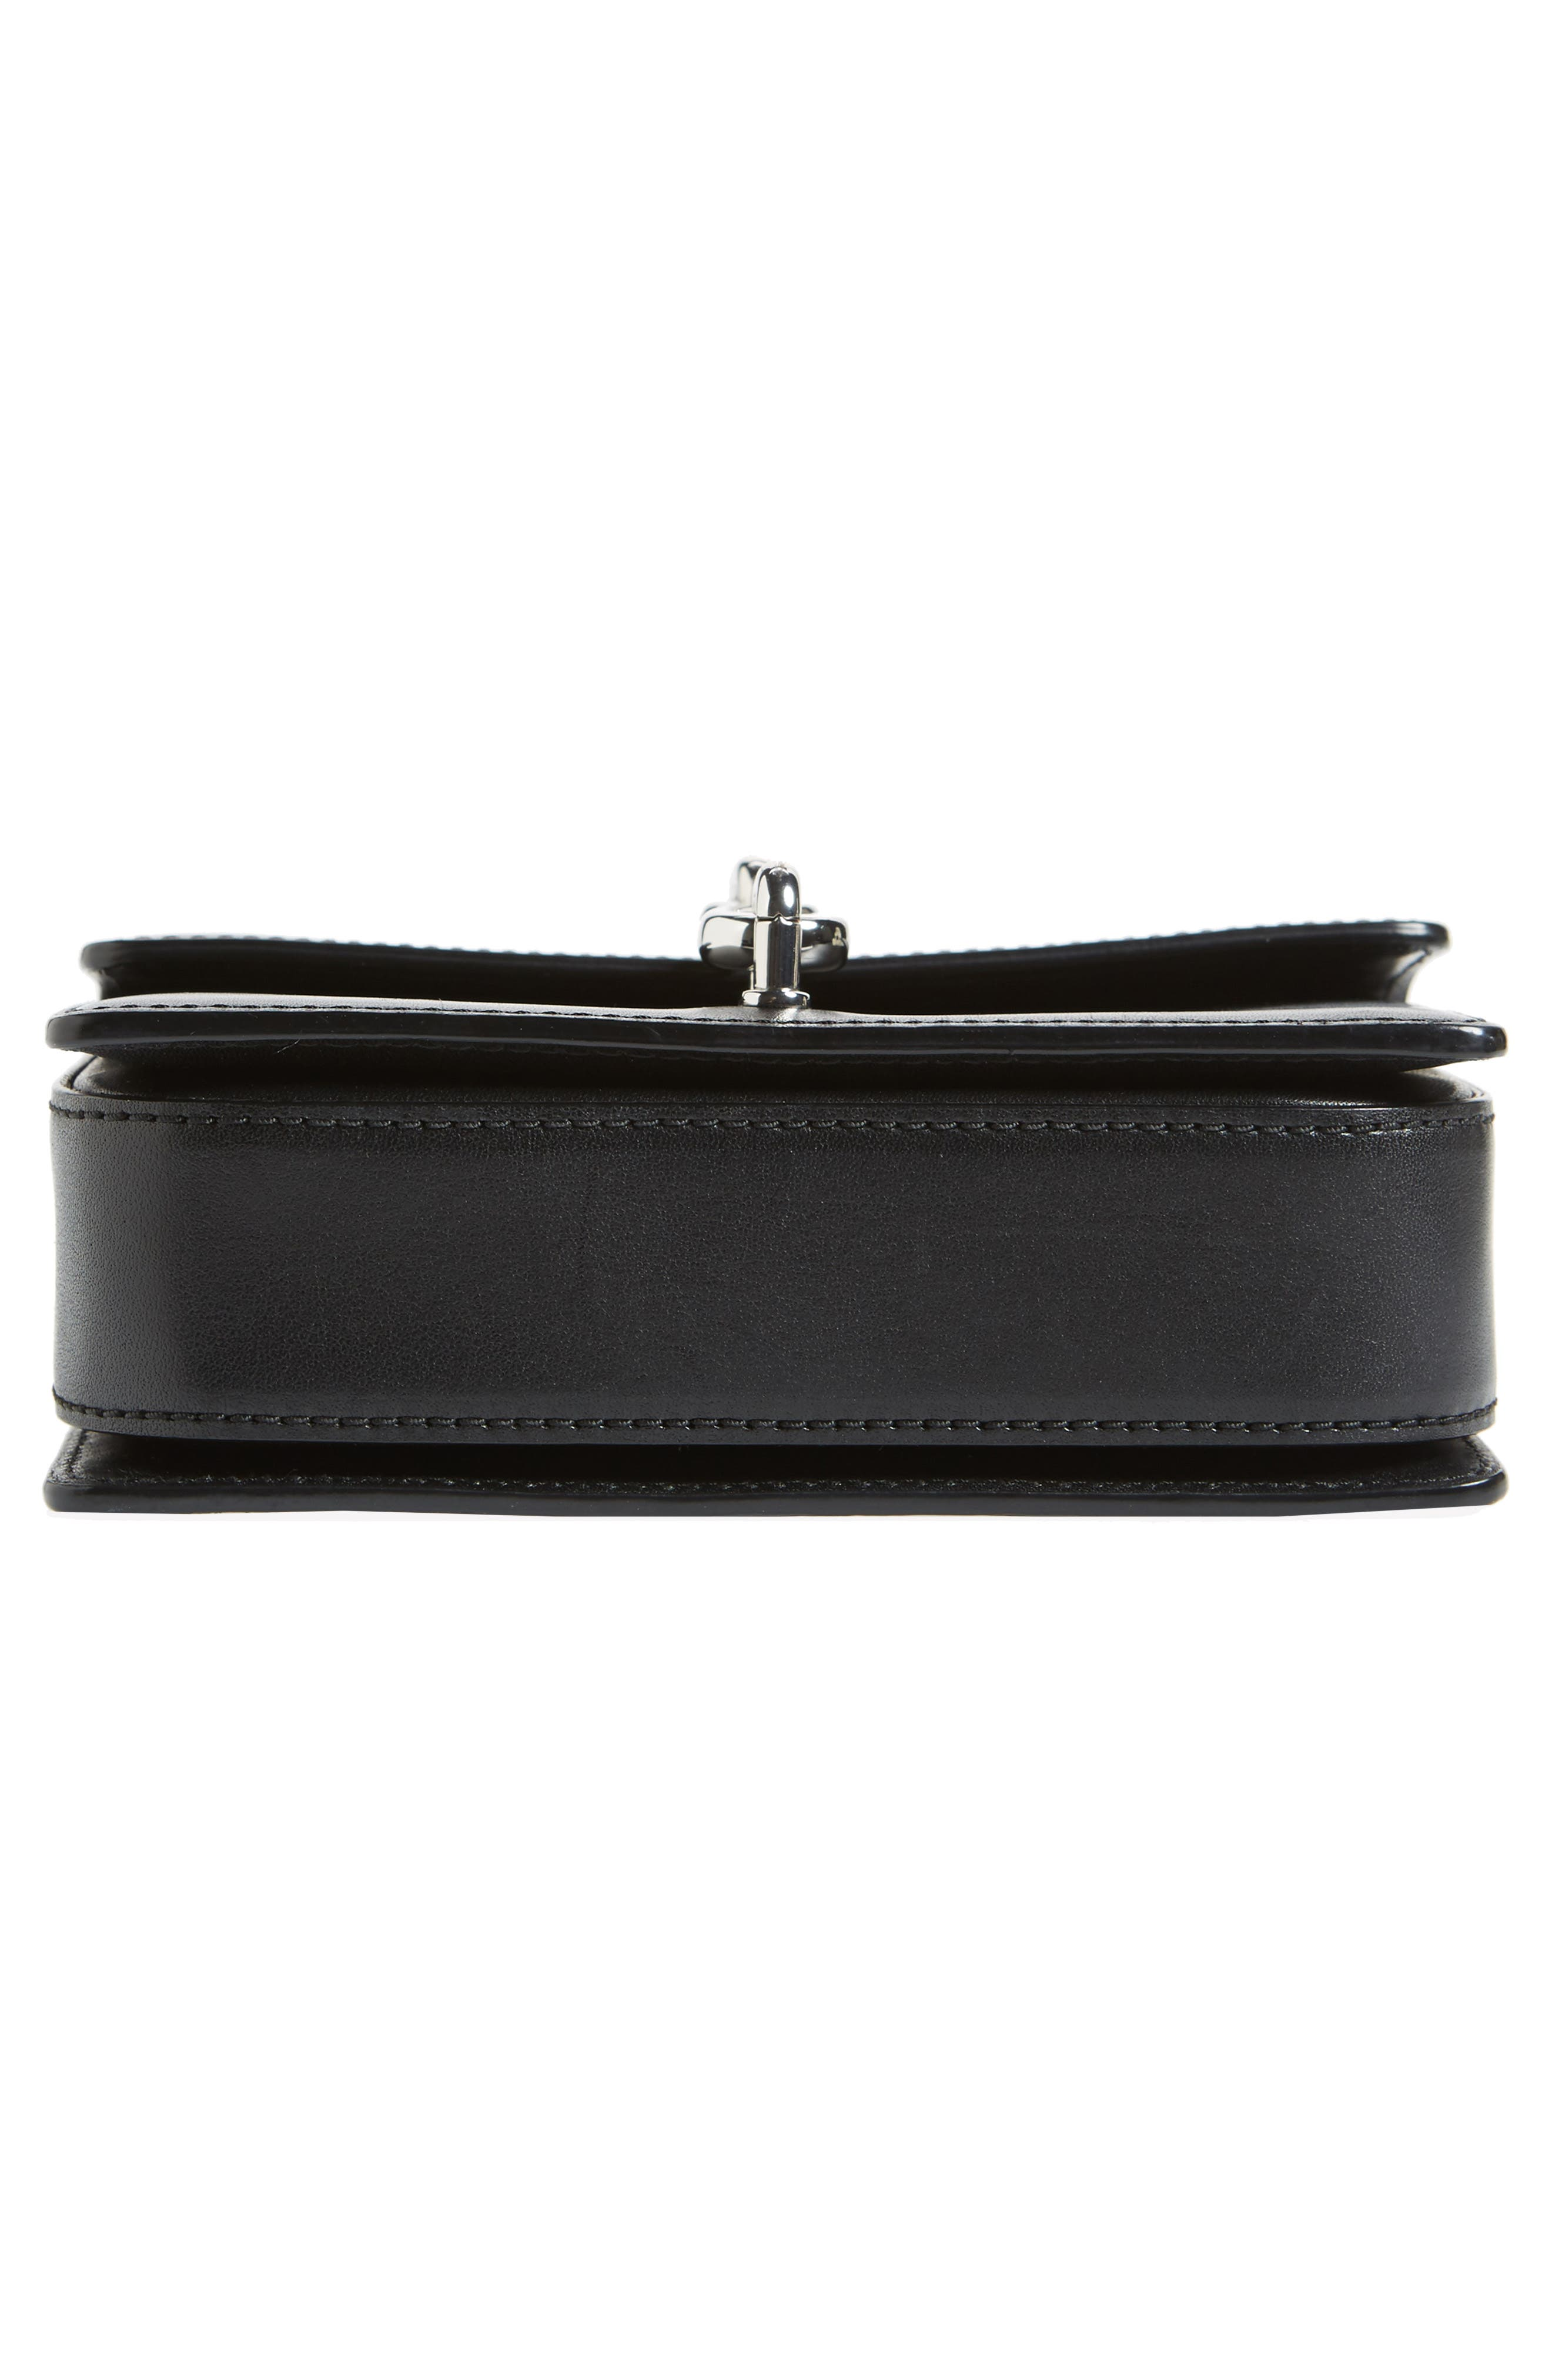 Hook Small Leather Crossbody Bag,                             Alternate thumbnail 6, color,                             001